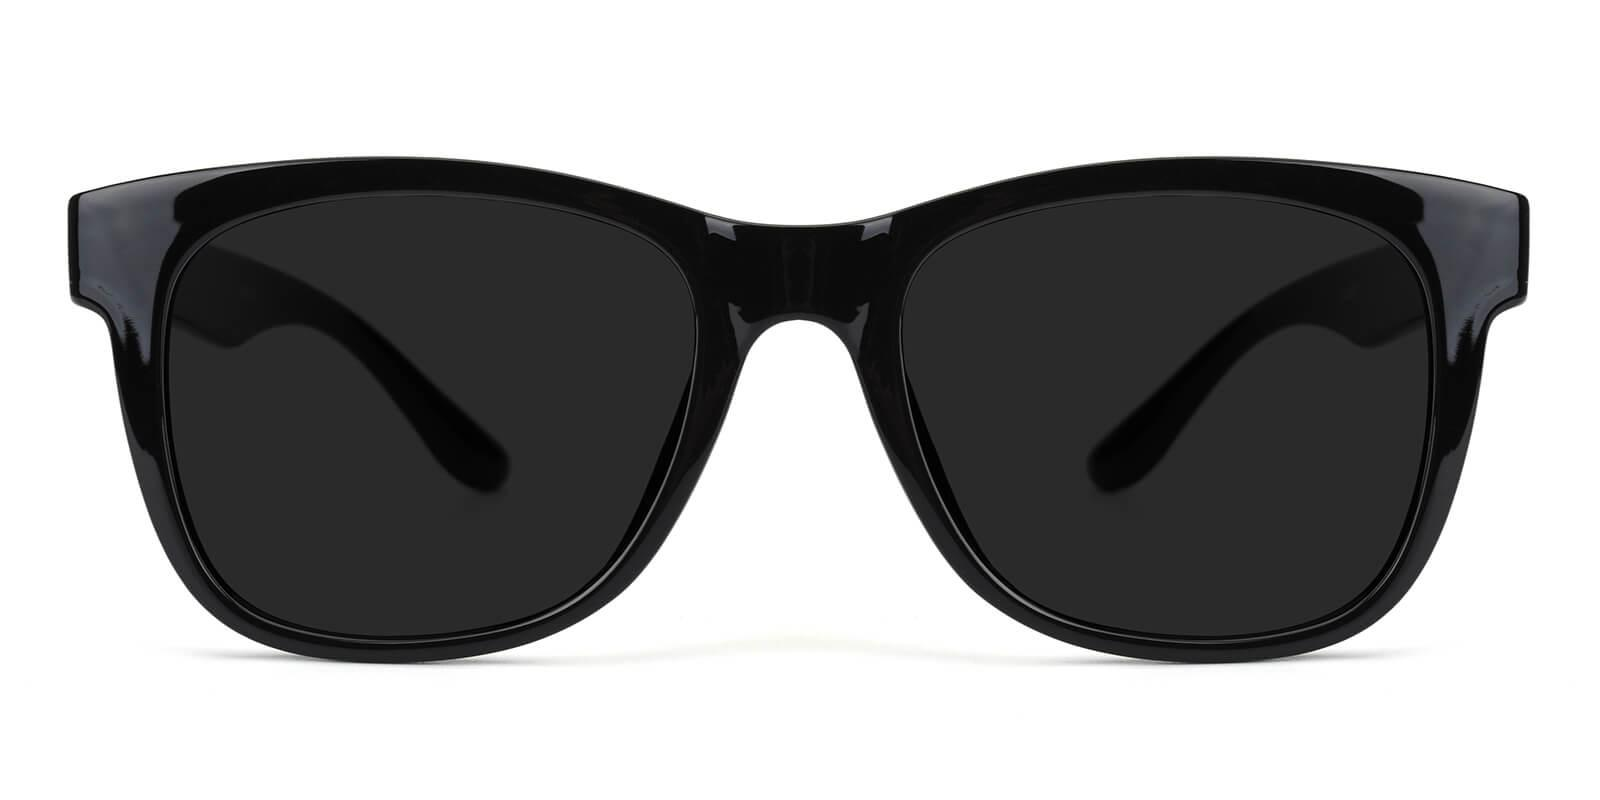 Tracly-Black-Square / Cat-TR-Sunglasses-additional2